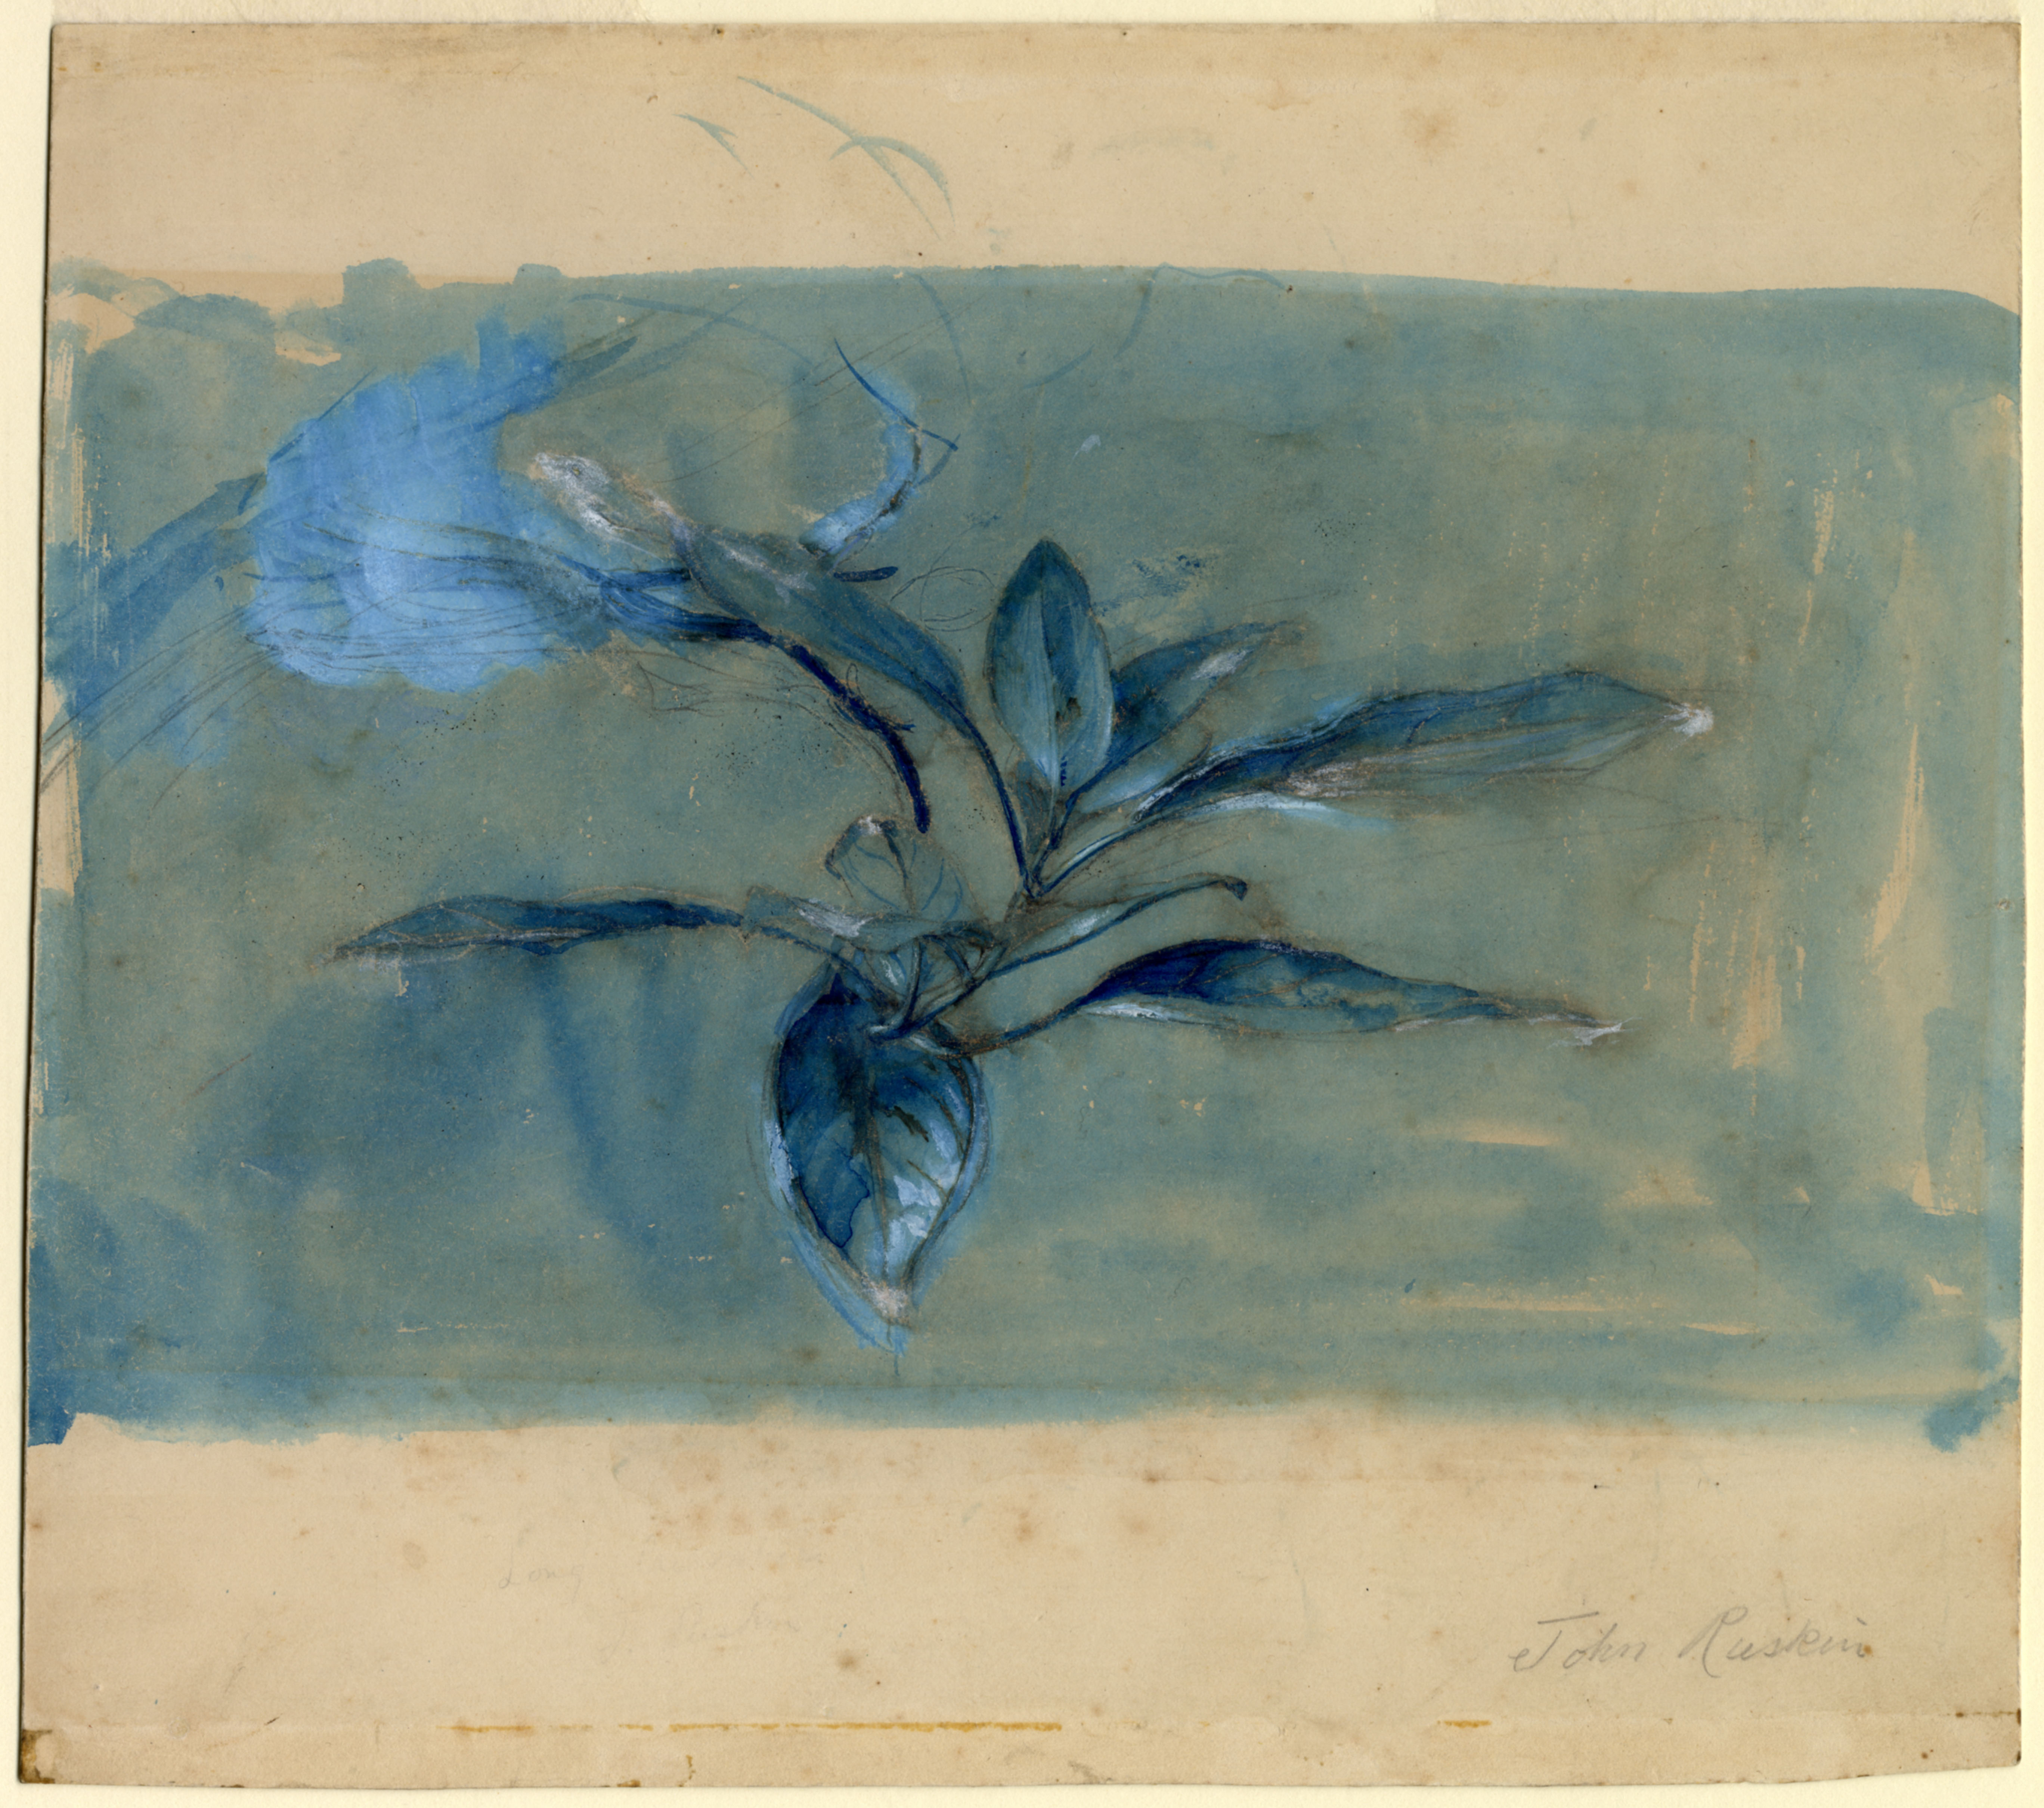 John Ruskin, Rhododendron Leaves  c.1854-58, RF1352 © Ruskin Foundation